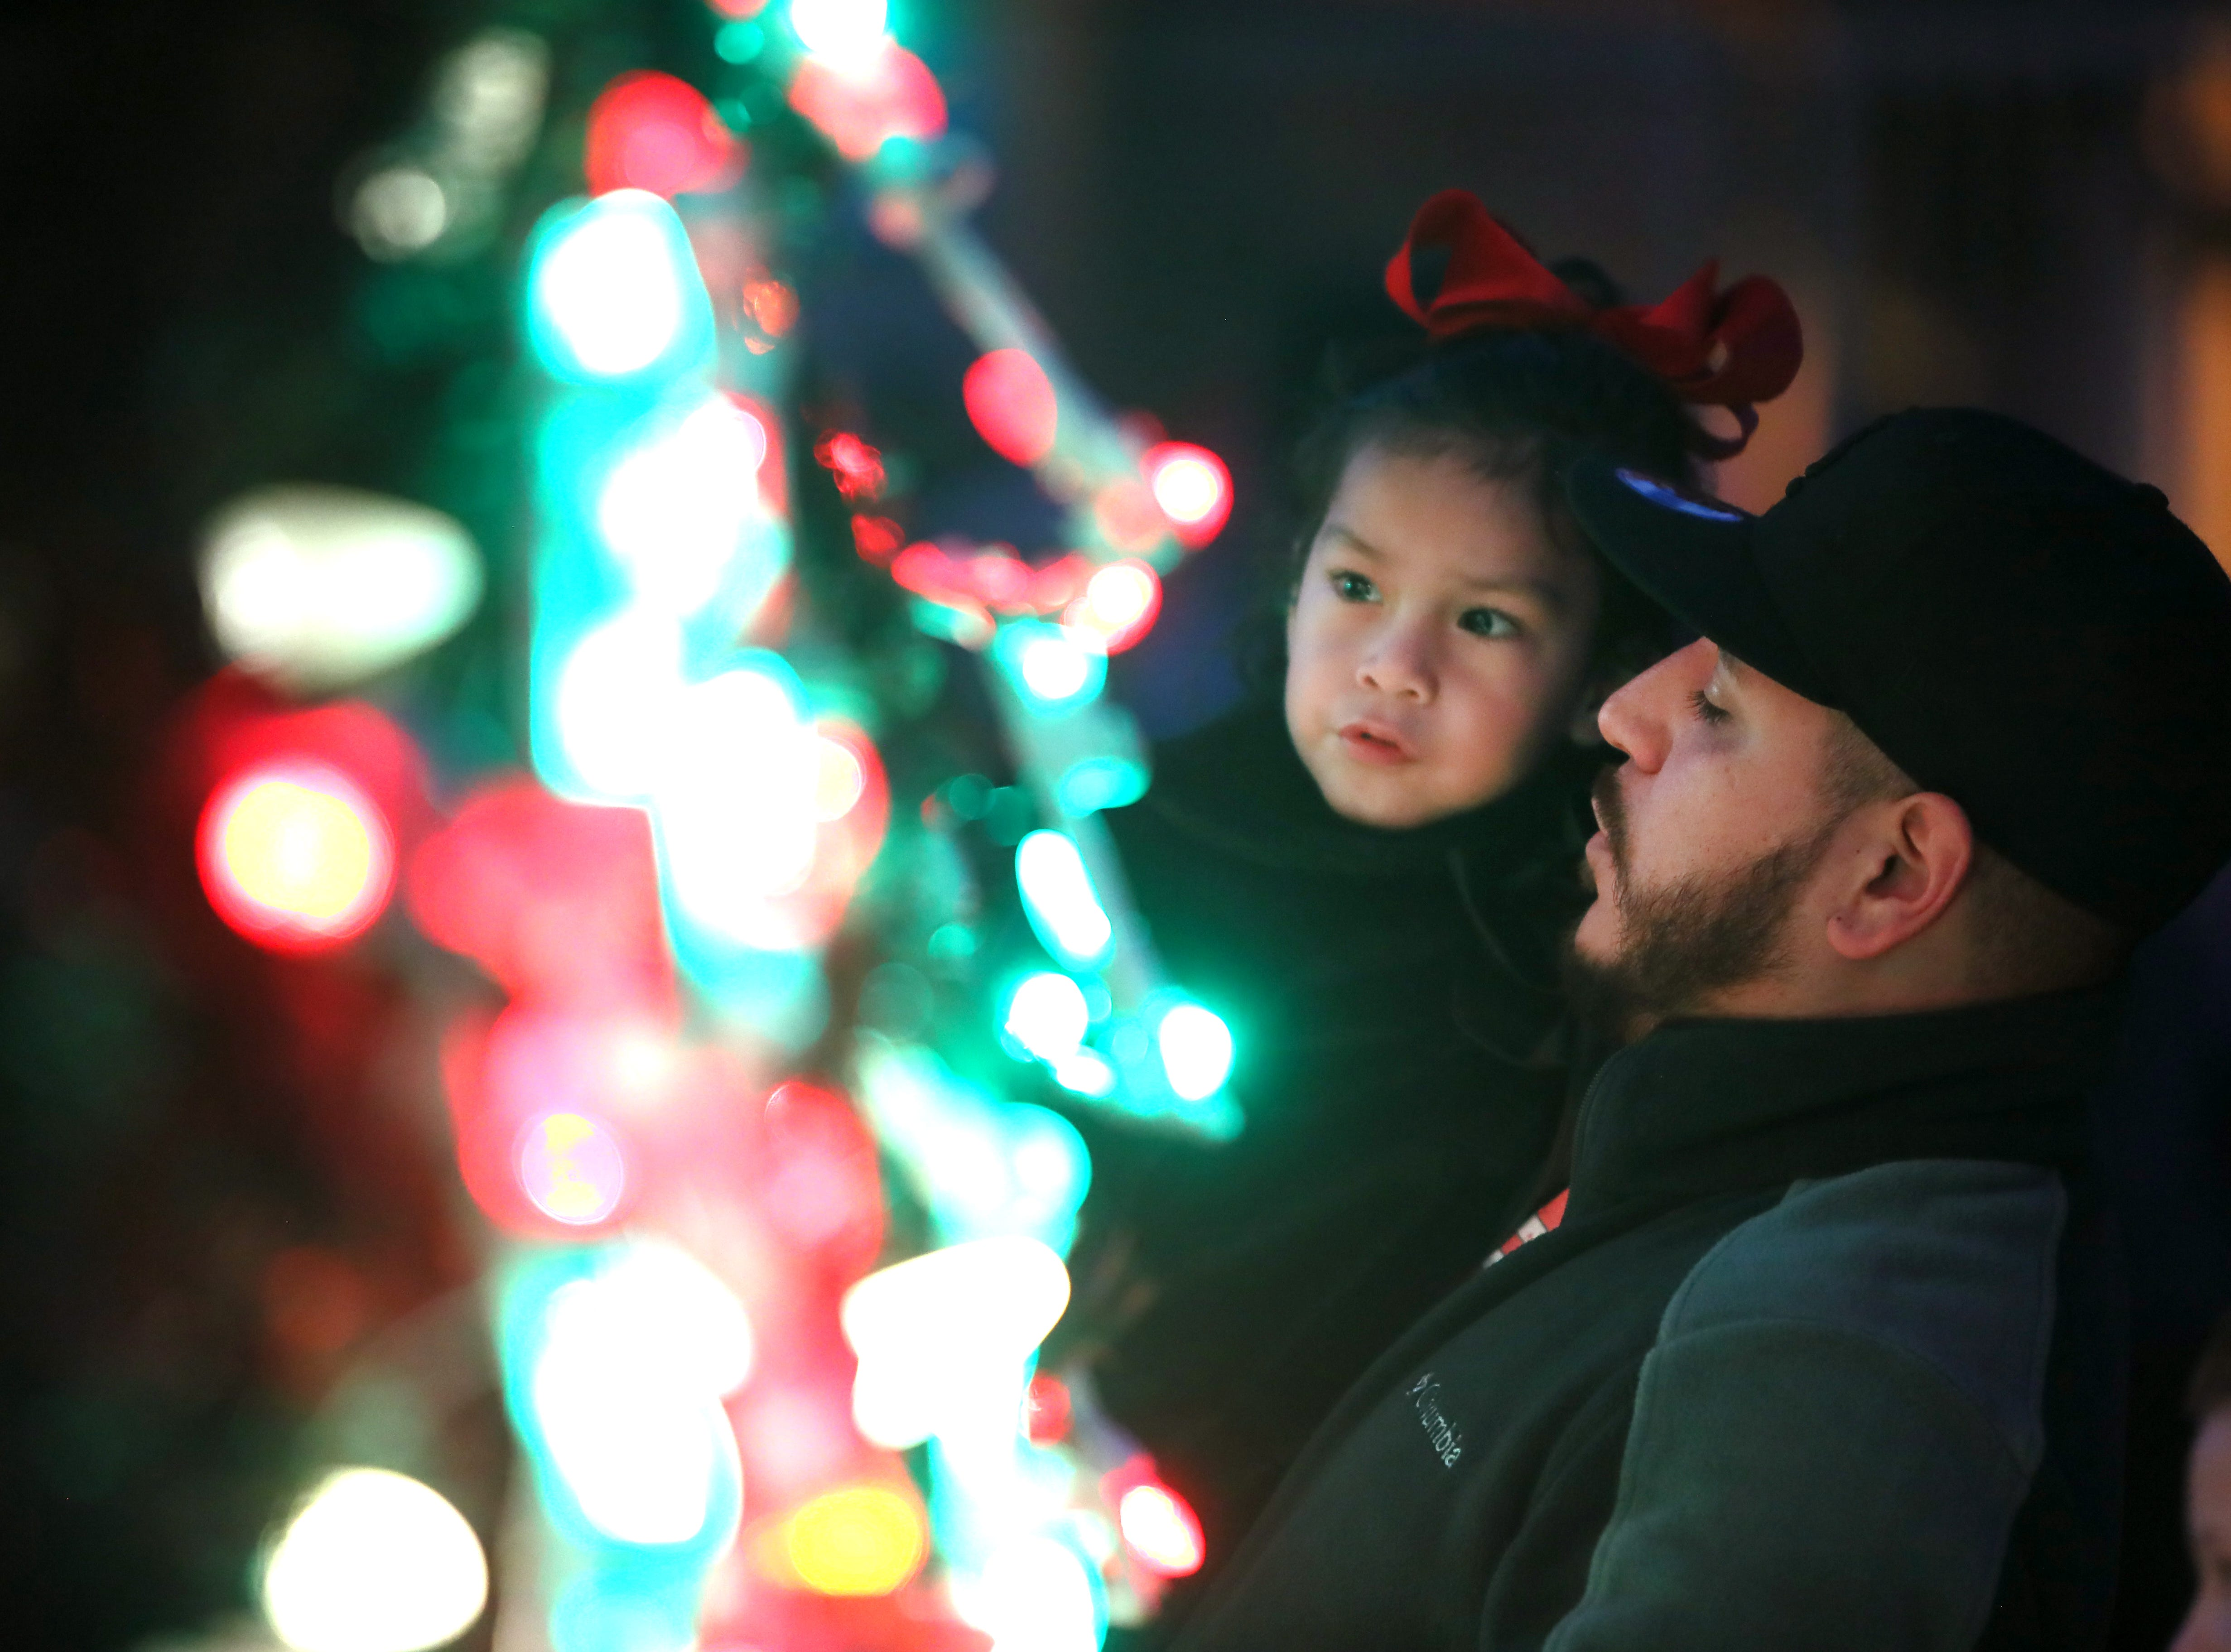 Alex Mercado holds Ximena Orozco, 3, for a closer look at the Christmas tree lights during Zoo Lights, a holiday event at the Memphis Zoo Saturday, Nov. 24, 2018.